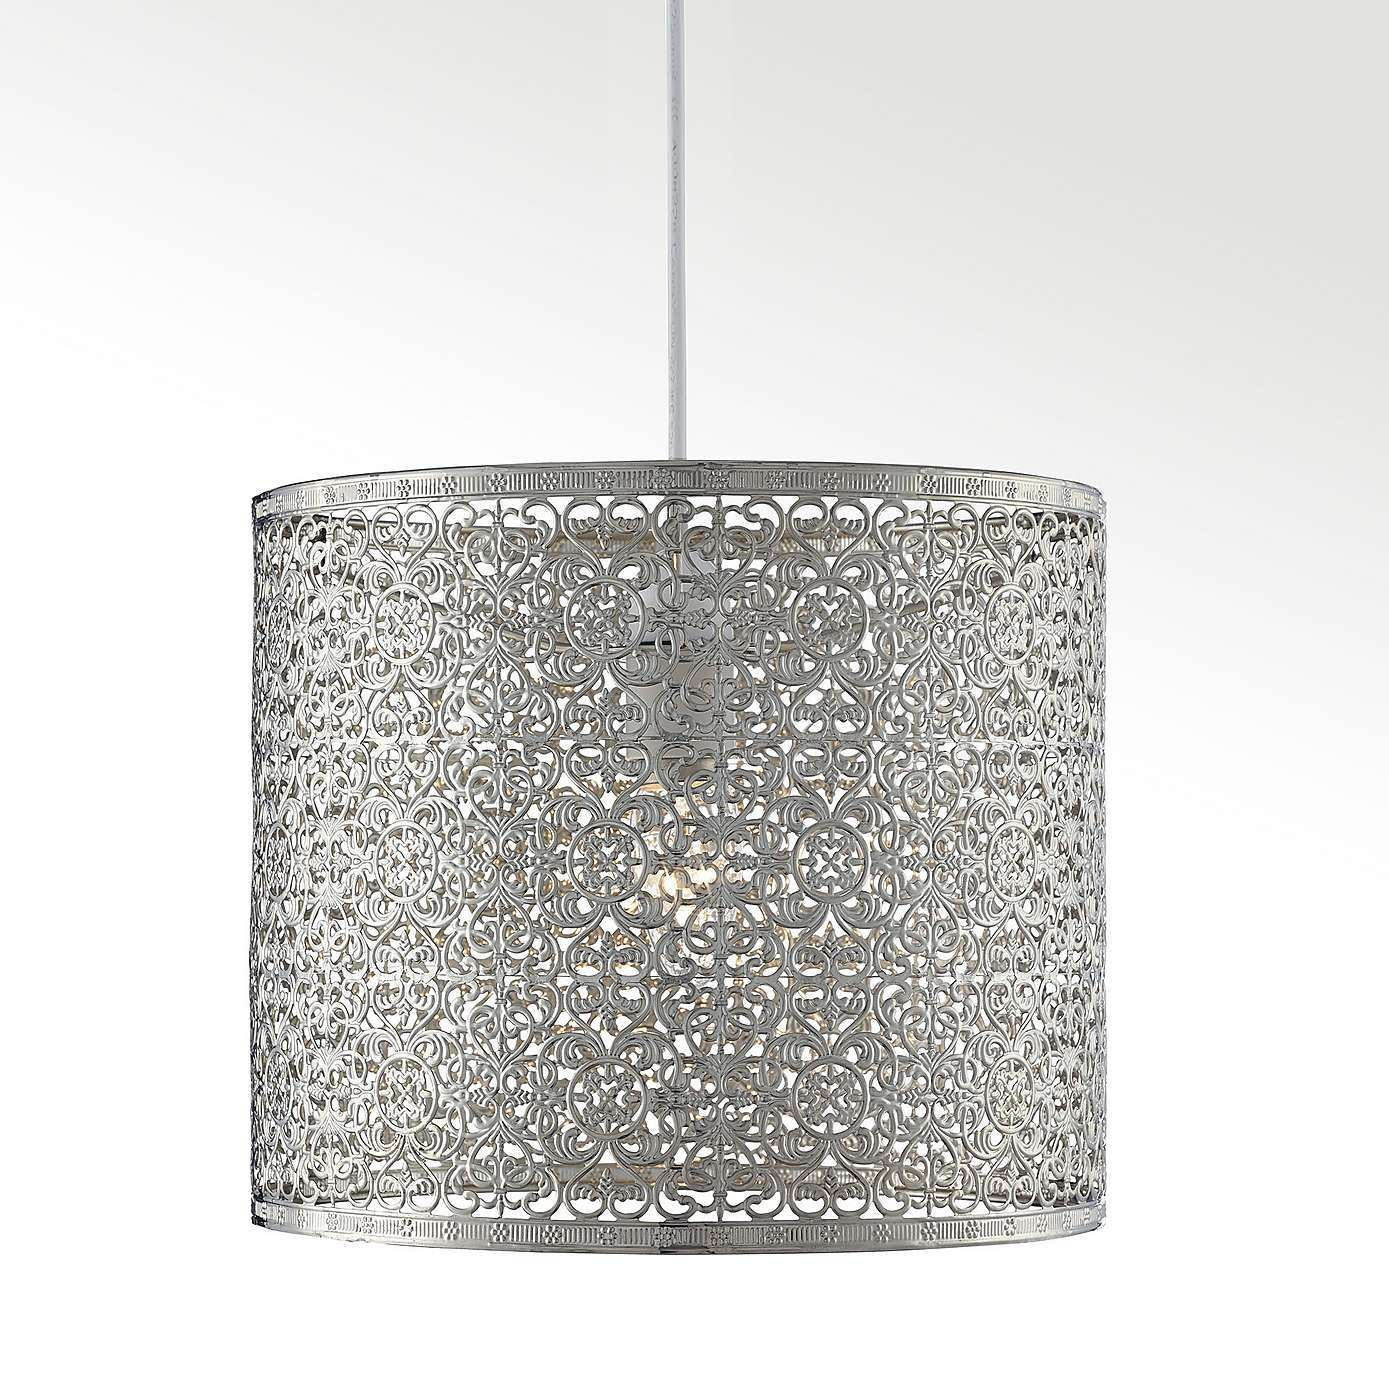 Update Your Interior With Our Web Metal Pendant Stylishly Modern An Intricate Chrome Lace Effect This Light Shade Will Make A Dramatic Decorative